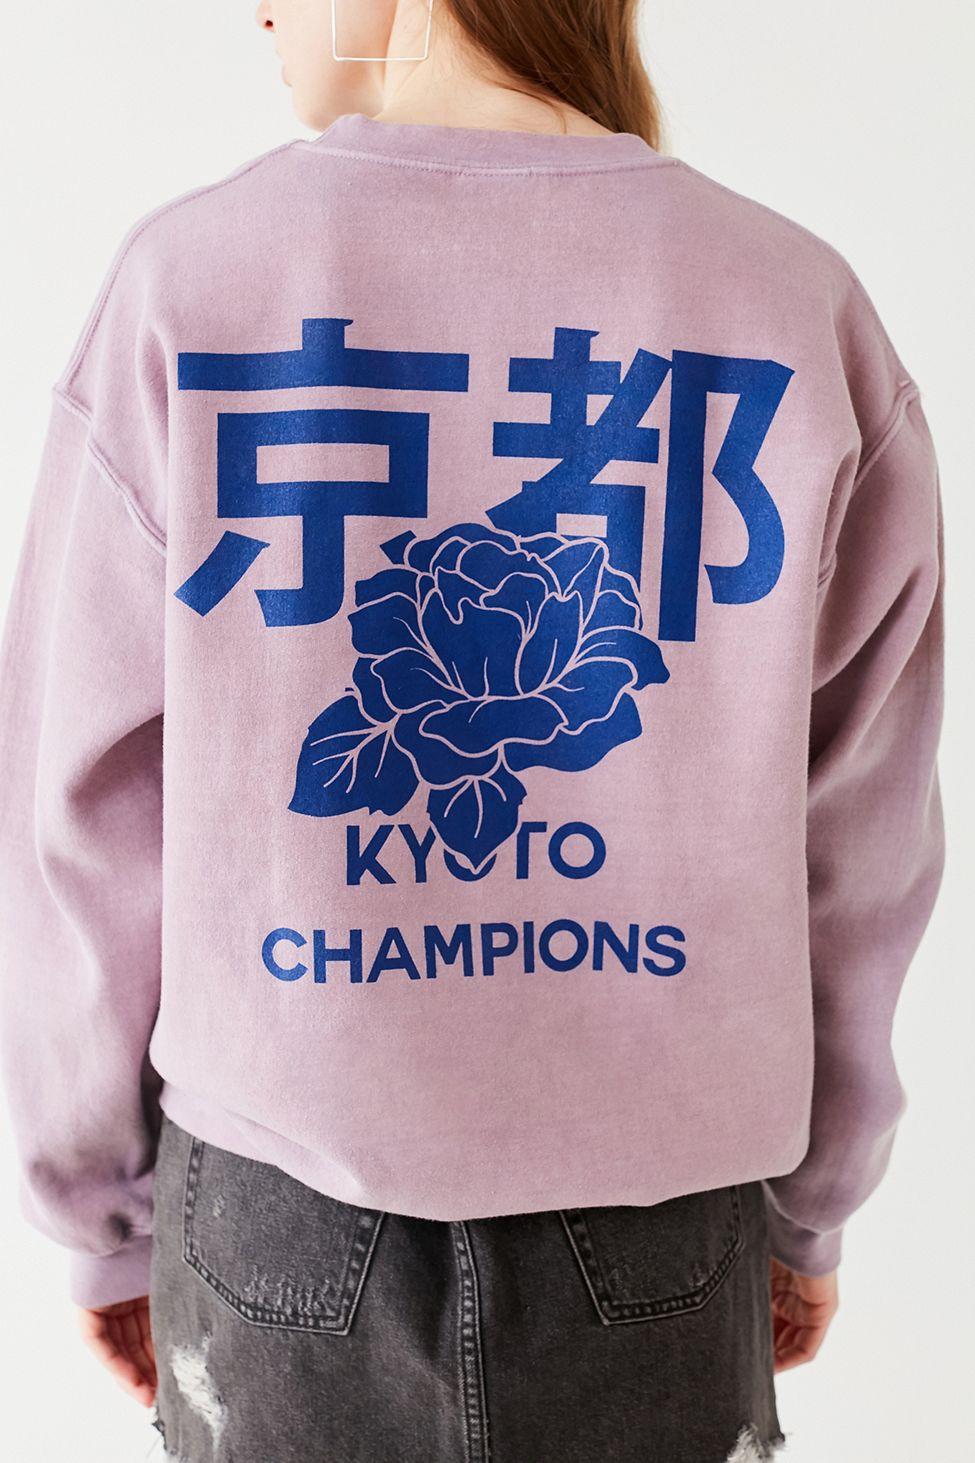 Urban Outfitters Kyoto Champions Overdyed Sweatshirt M Sweatshirts Urban Outfitters Shirts Street Wear Urban [ 1463 x 975 Pixel ]